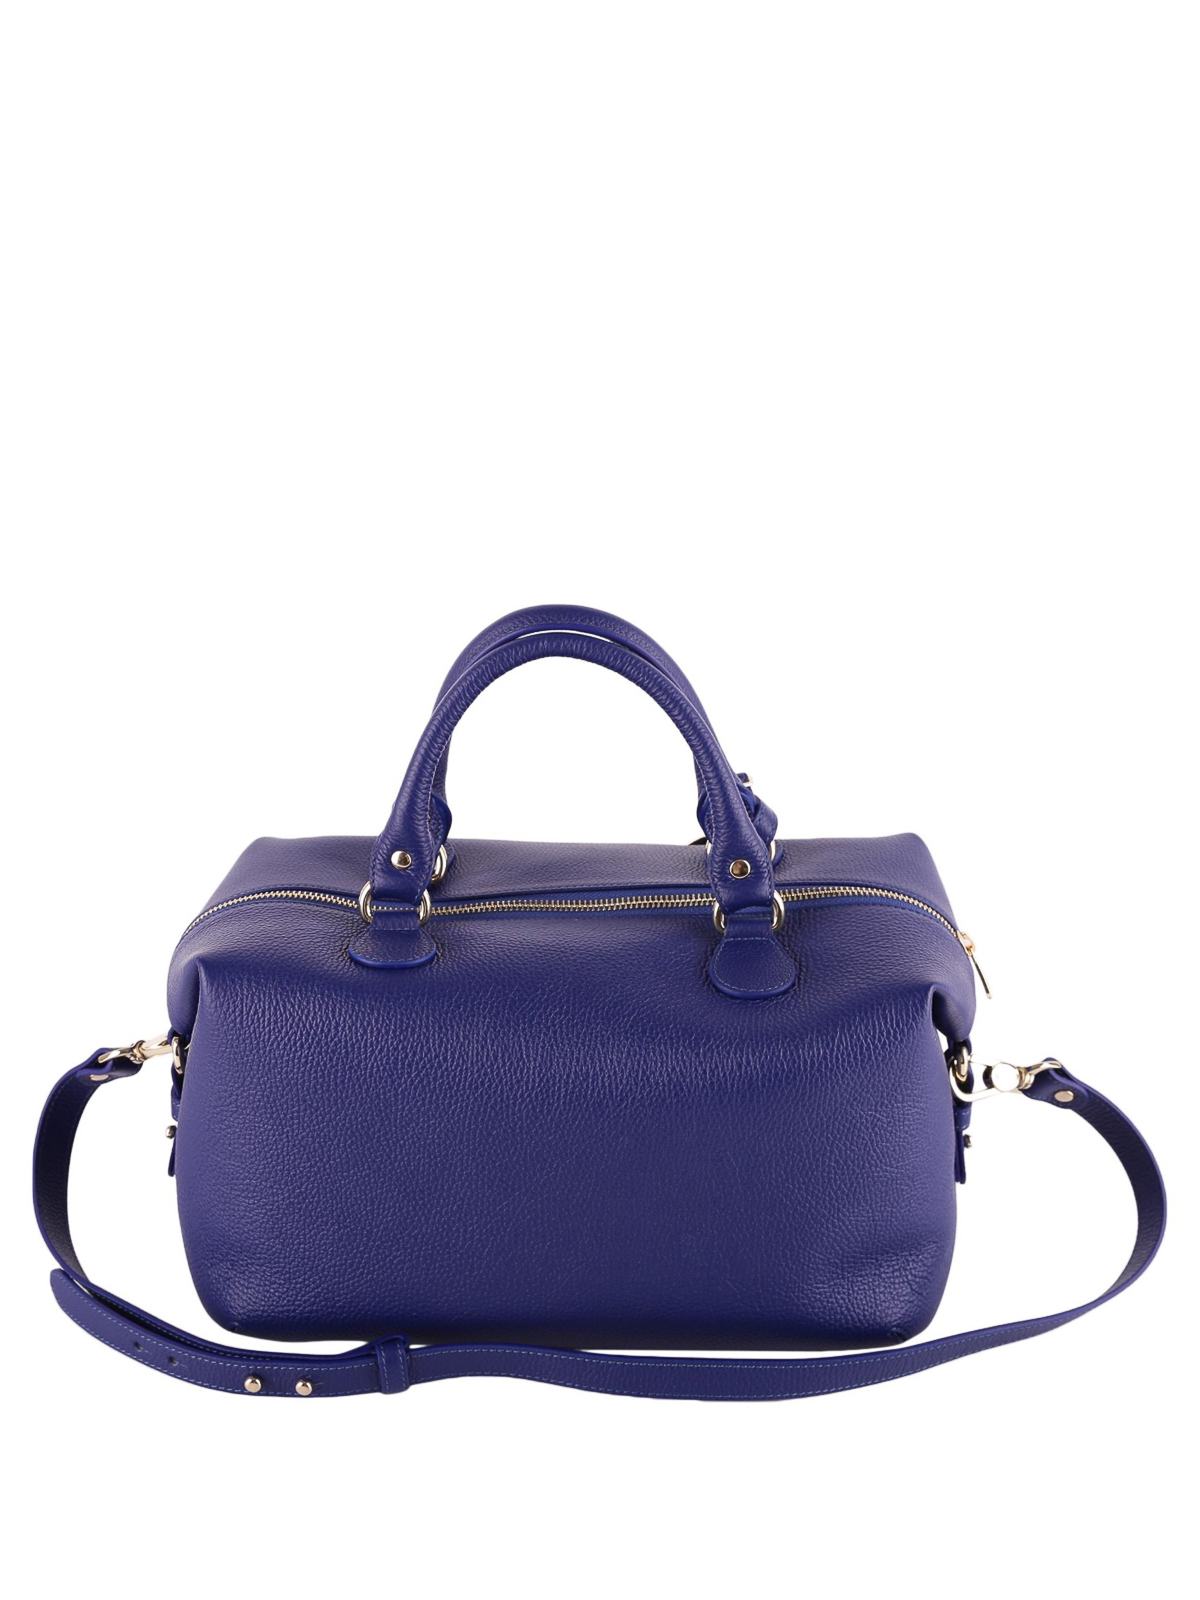 84379e201545 iKRIX VERSACE COLLECTION  bowling bags - Blue hammered leather bowling bag